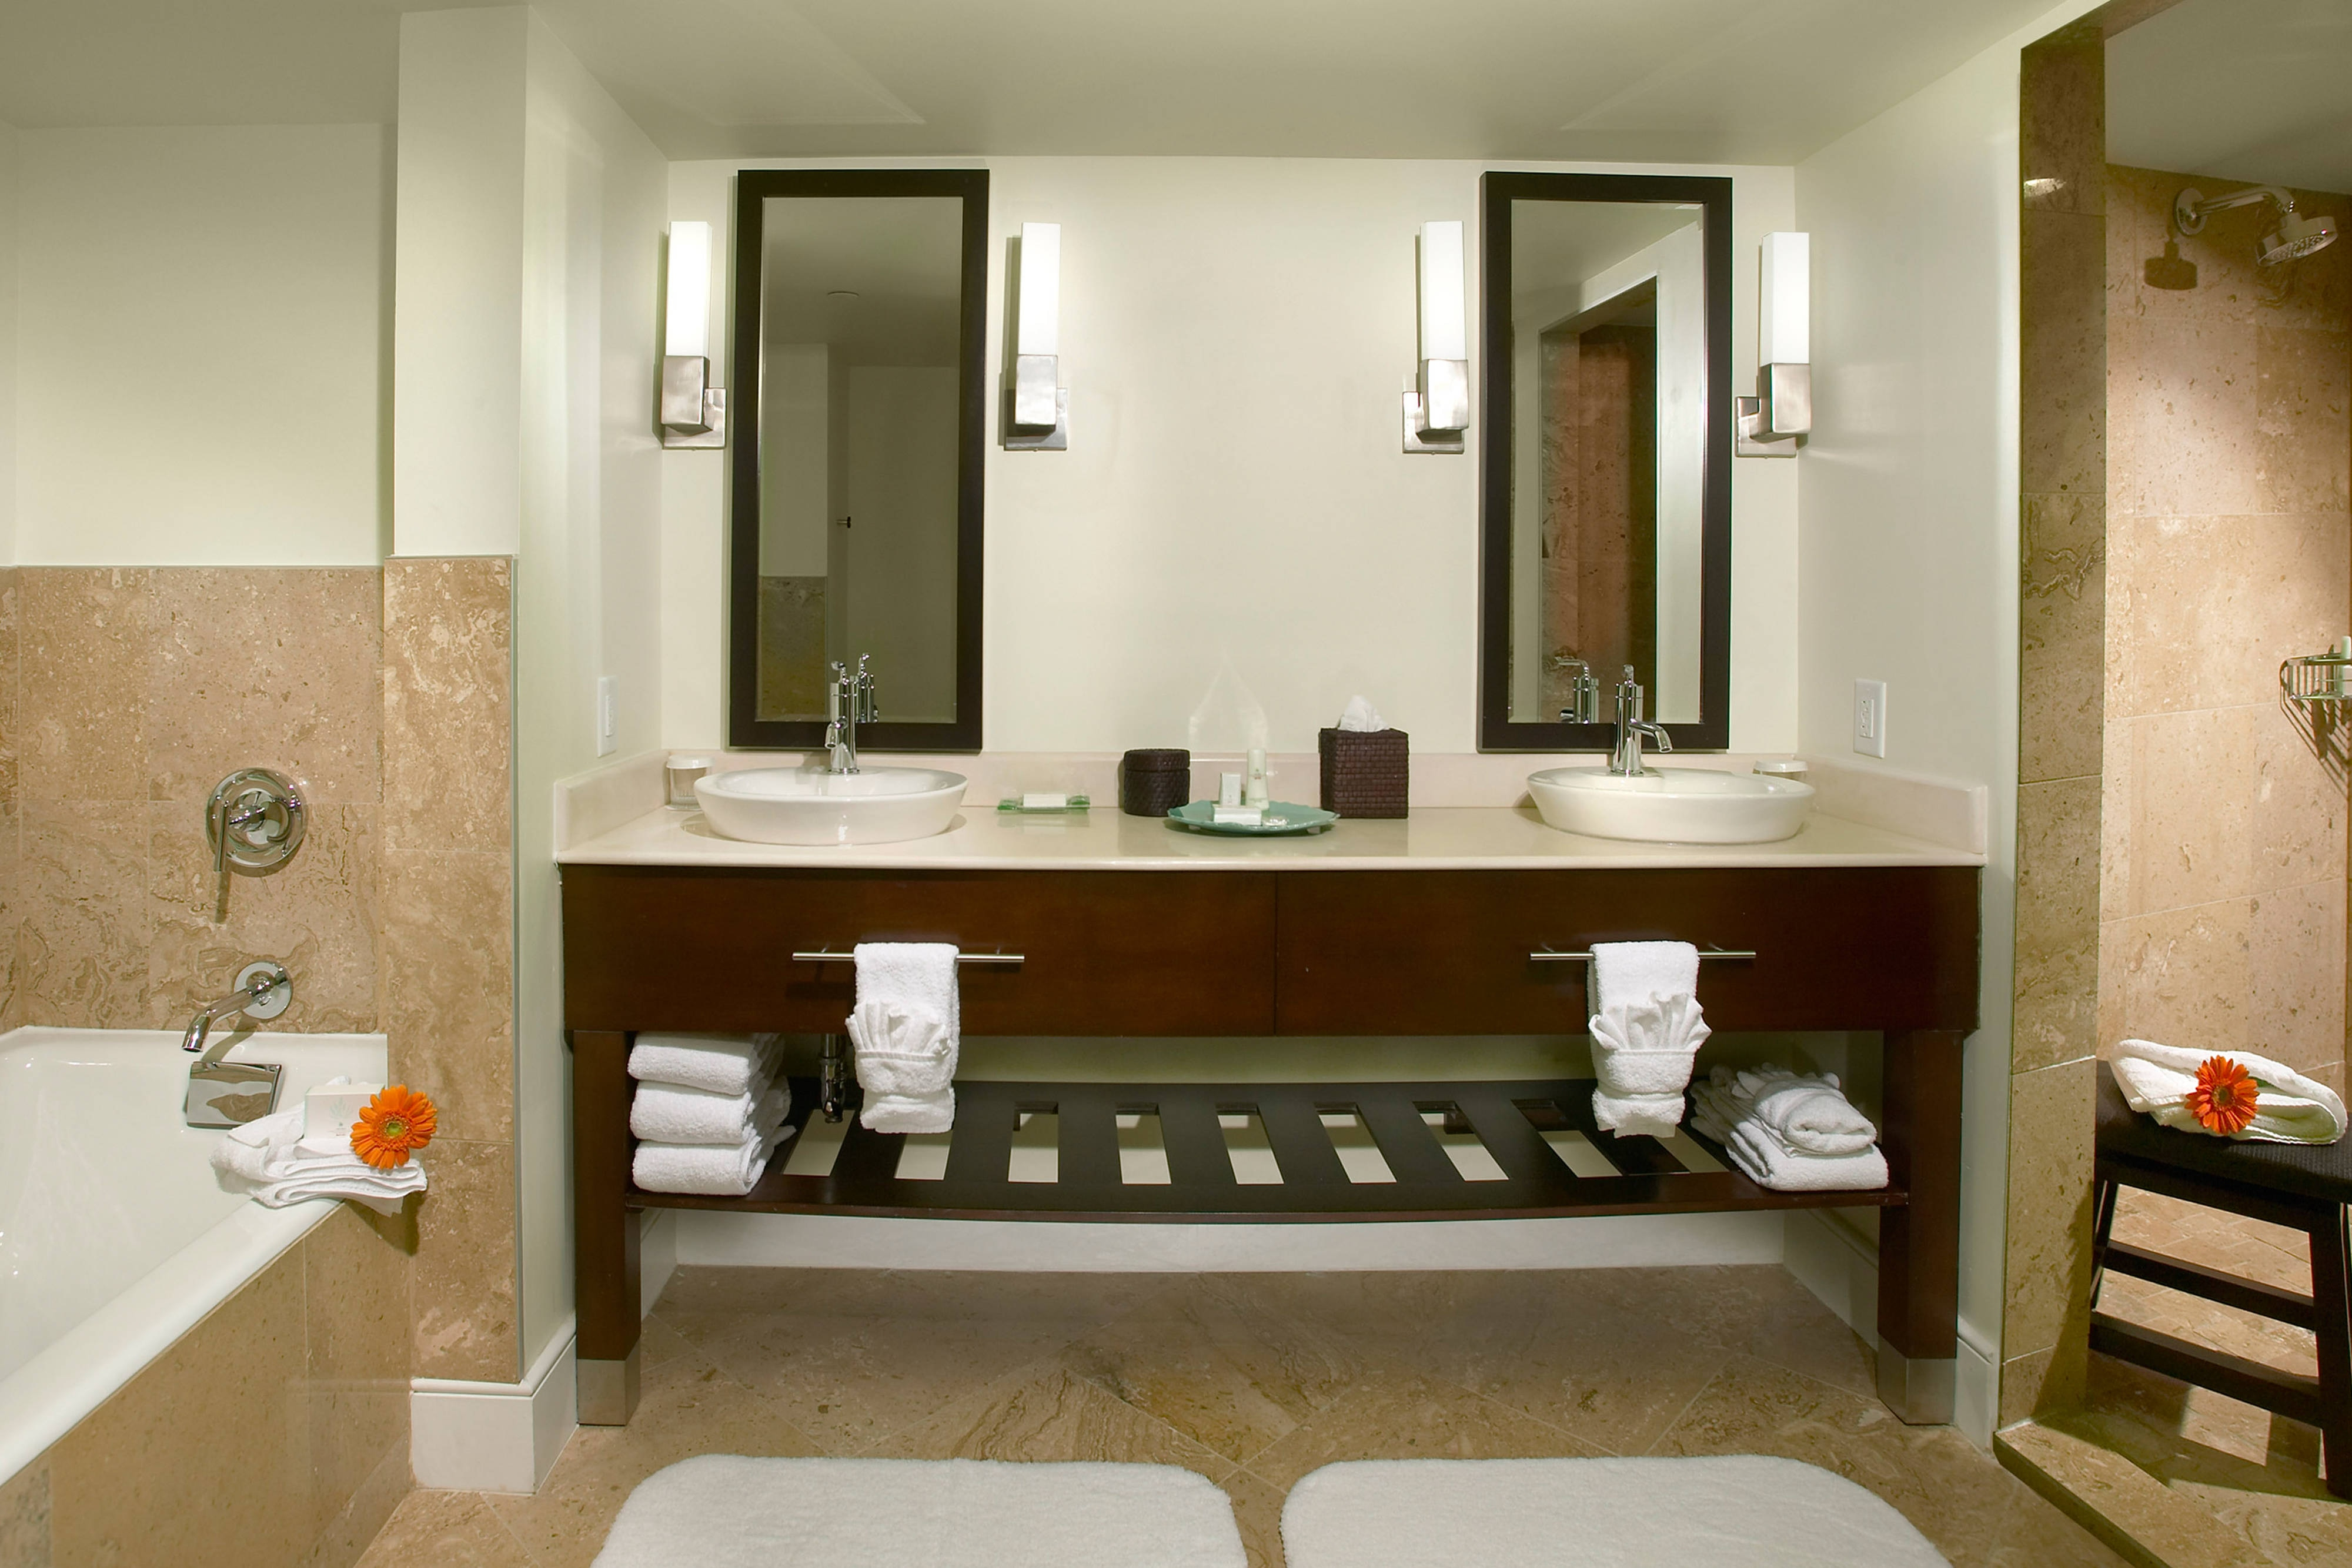 Aruba Luxury Hotel Suite Bathroom